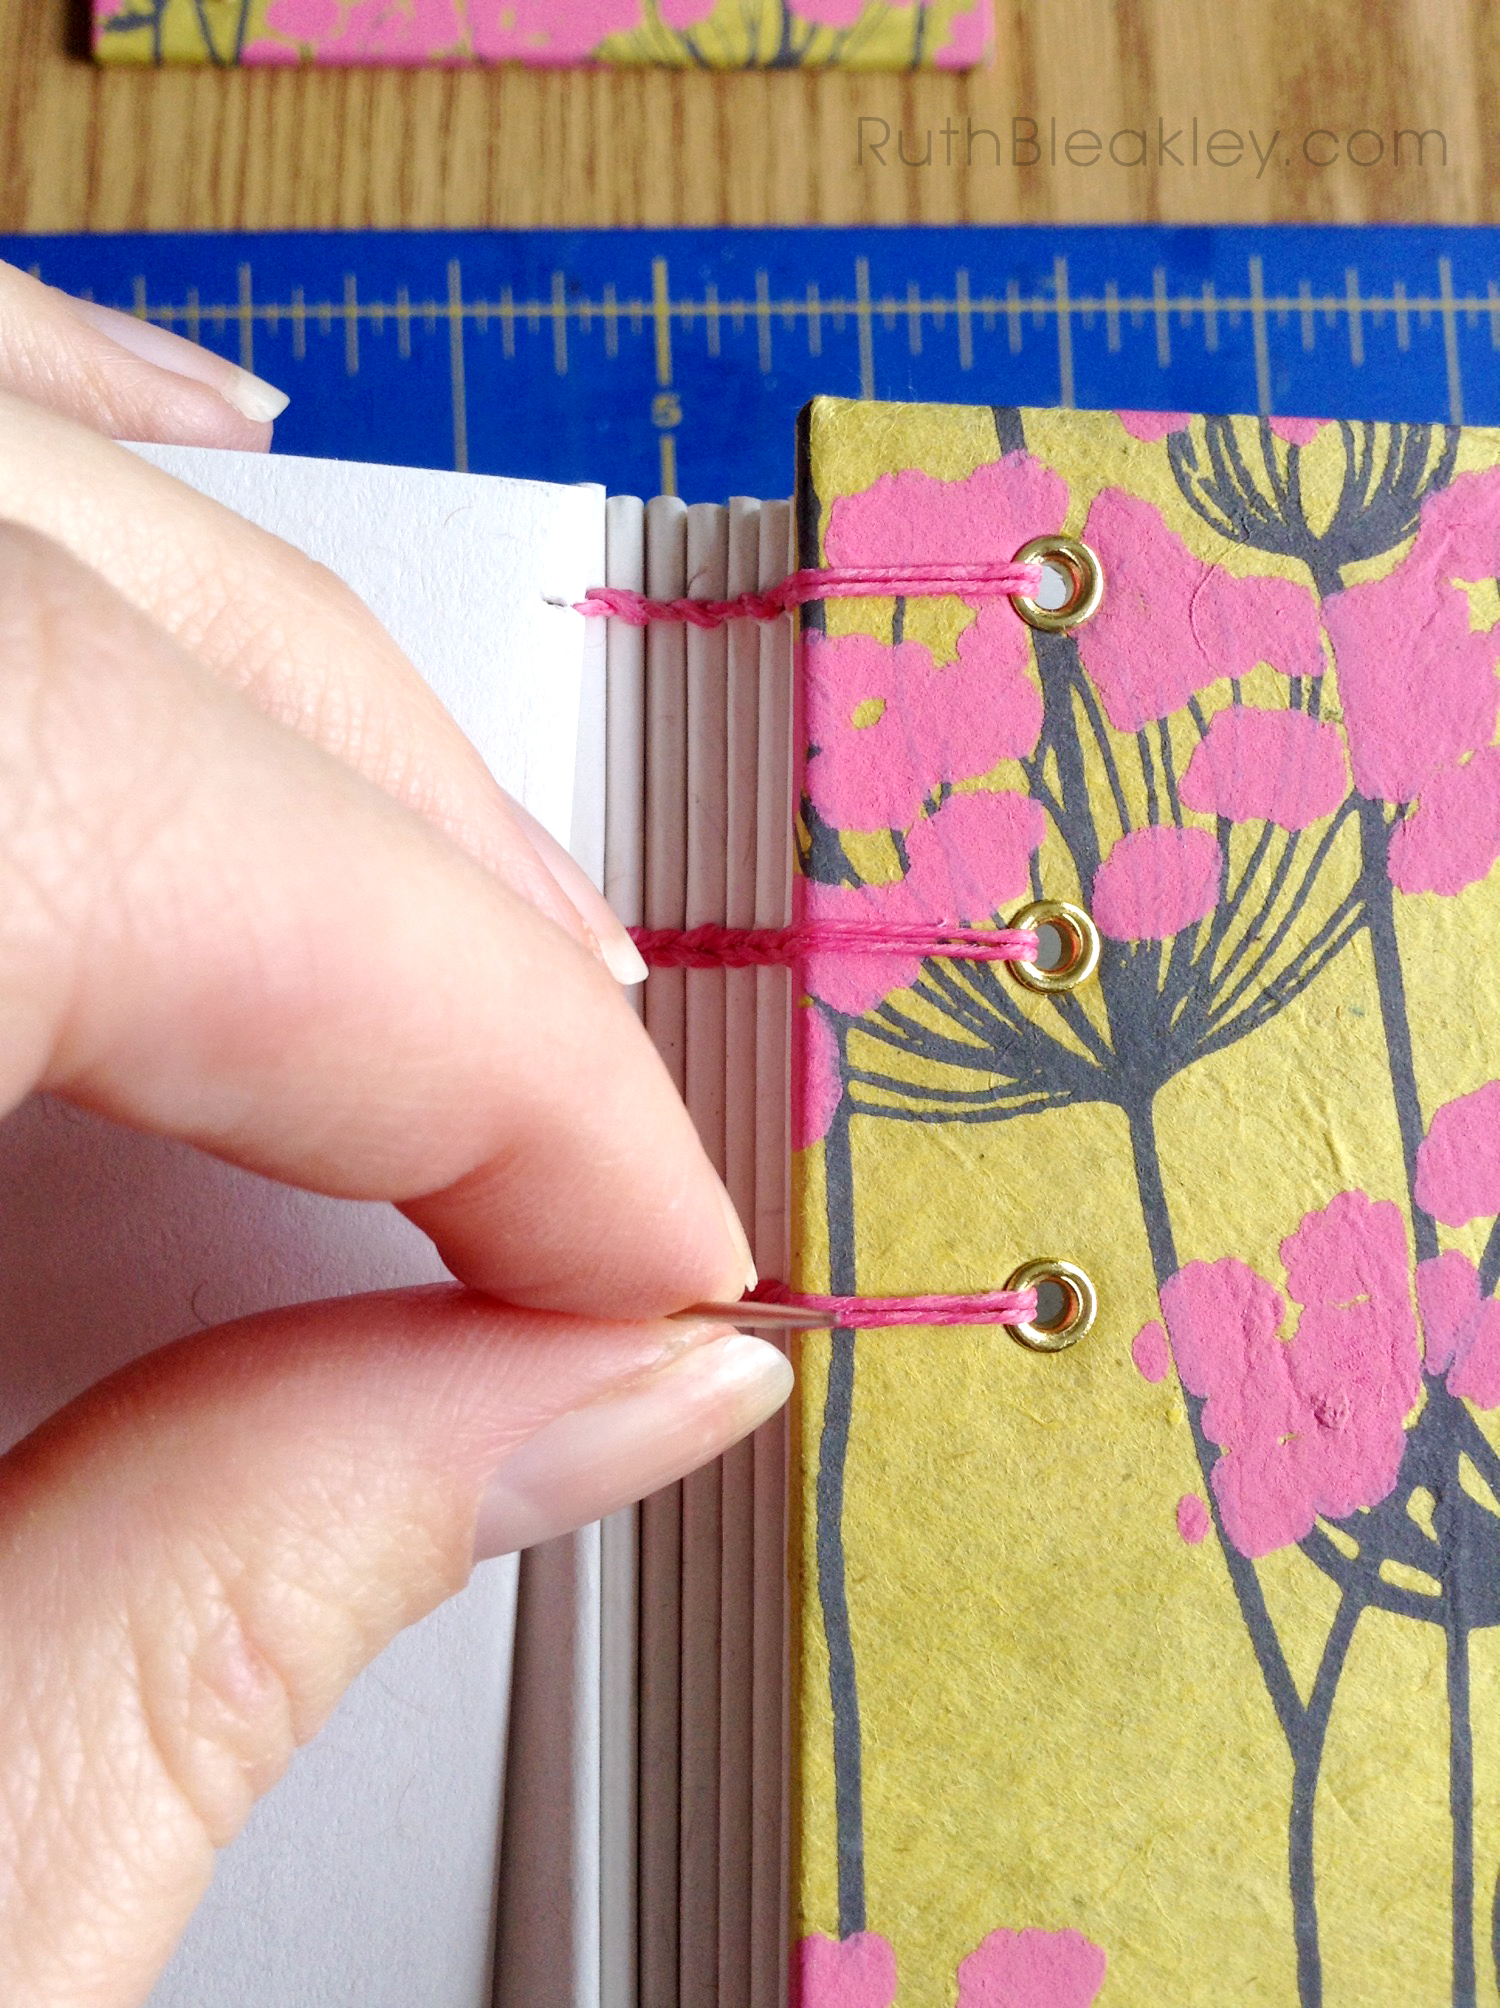 Coptic Stitch Journal handmade by Ruth Bleakley from Indian floral paper - yellow and pink